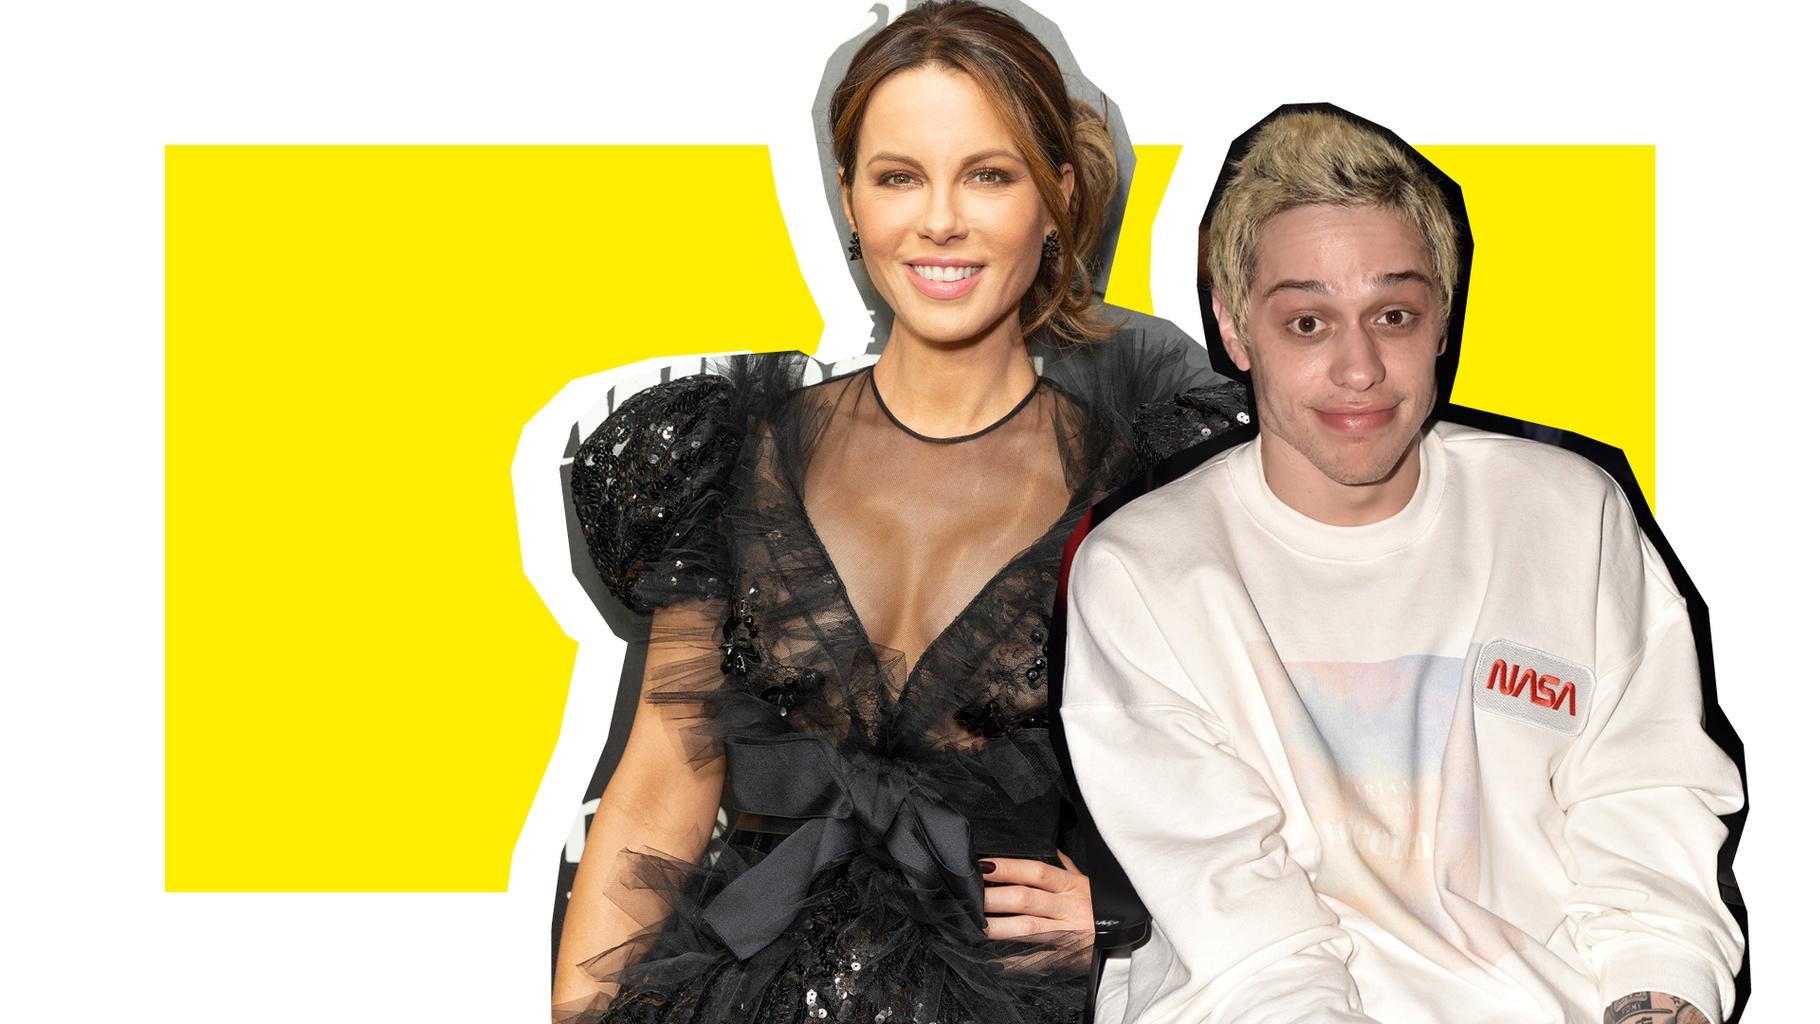 Pete Davidson And Kate Beckinsale Kissing Pics Pretty Much Confirm They're Dating